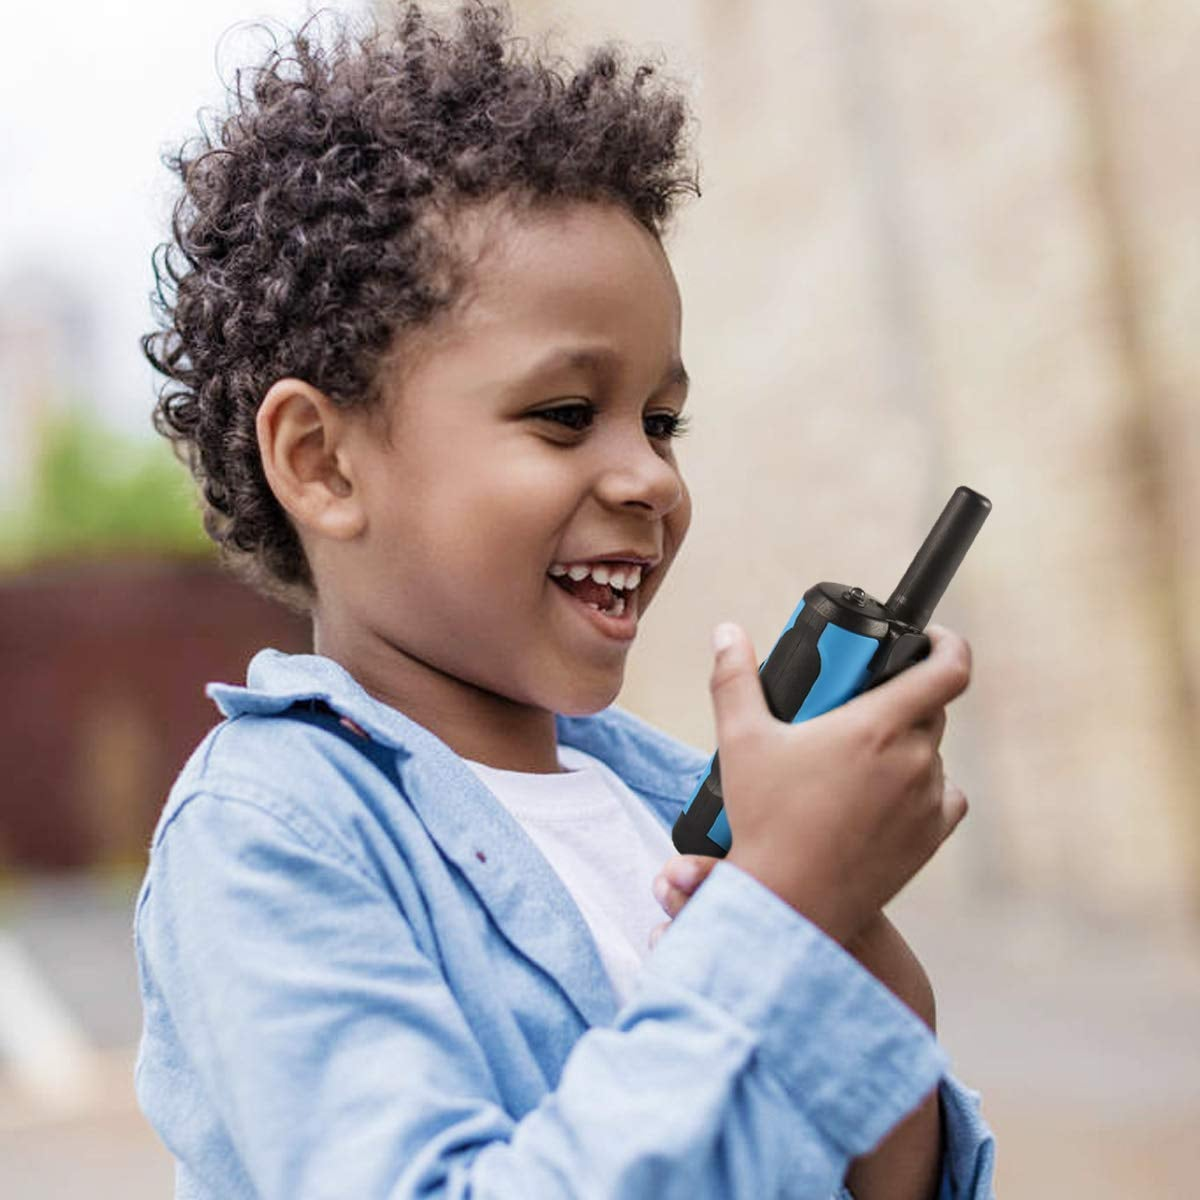 UOKOO Walkie Talkies For Kids | The Best Toys For Keeping 3-Year ...